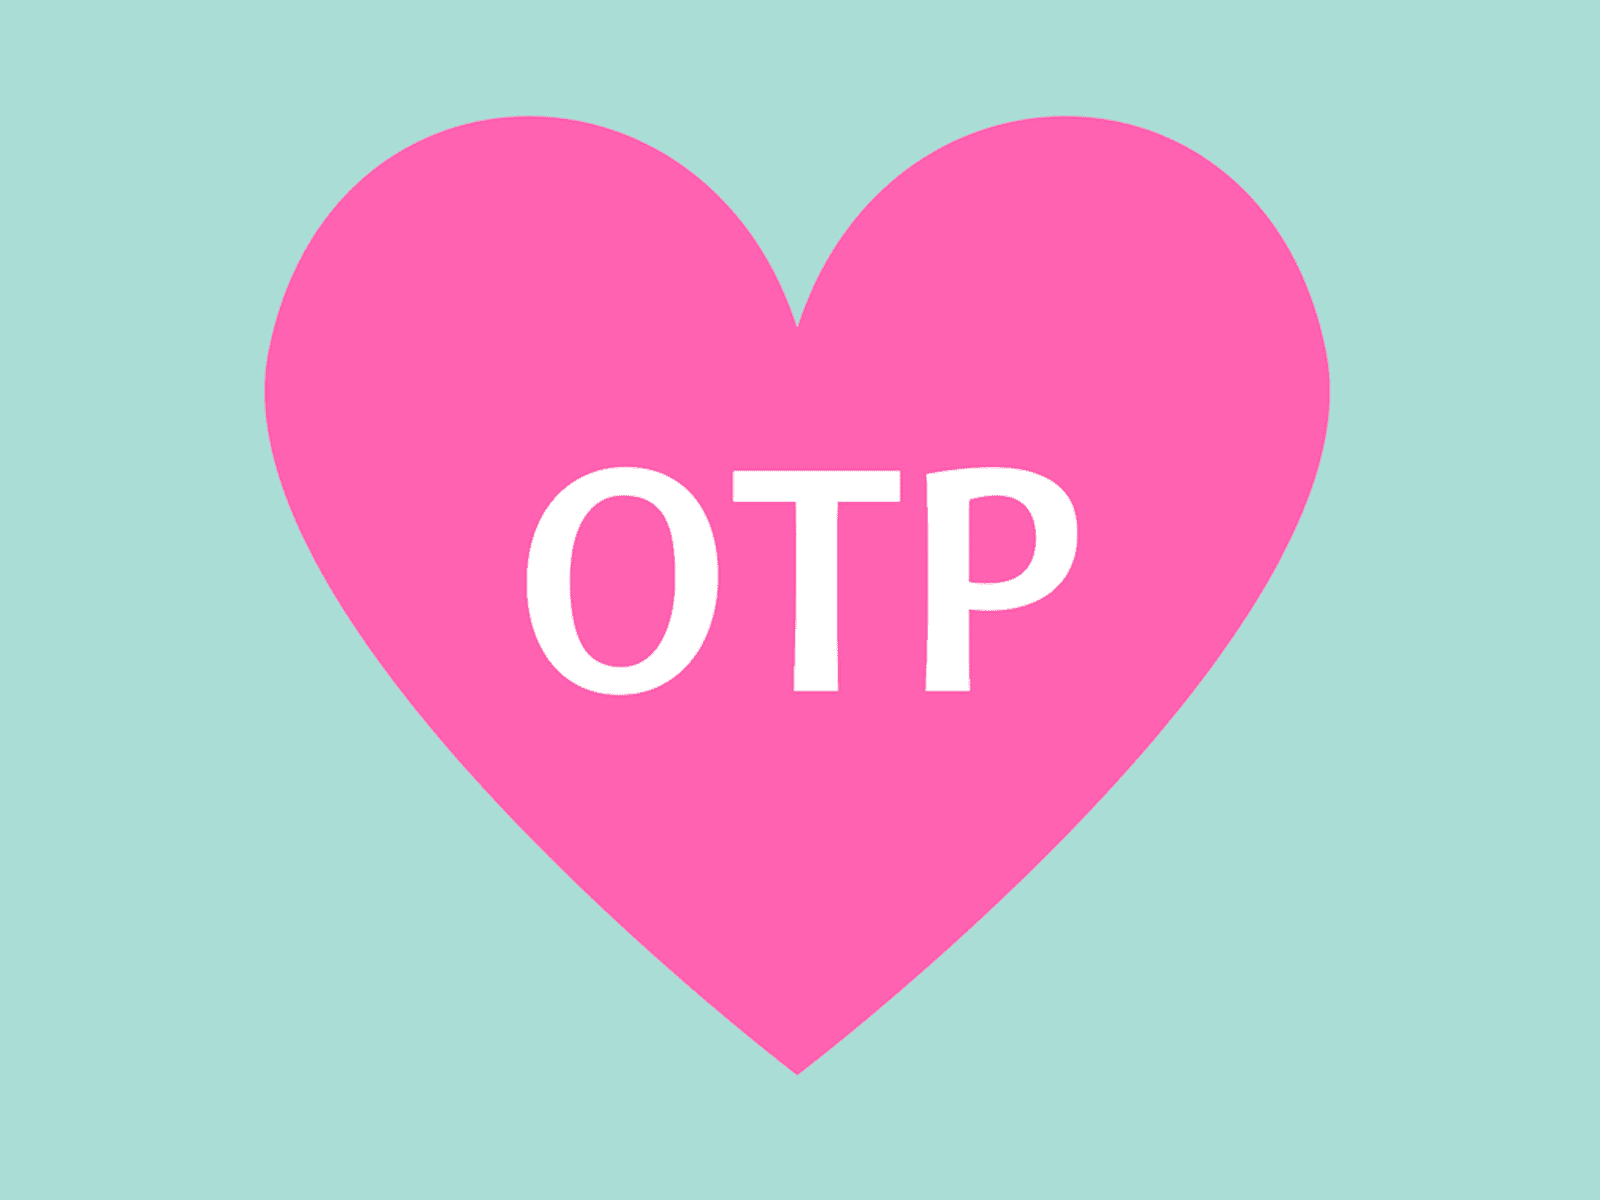 what does otp mean graphic